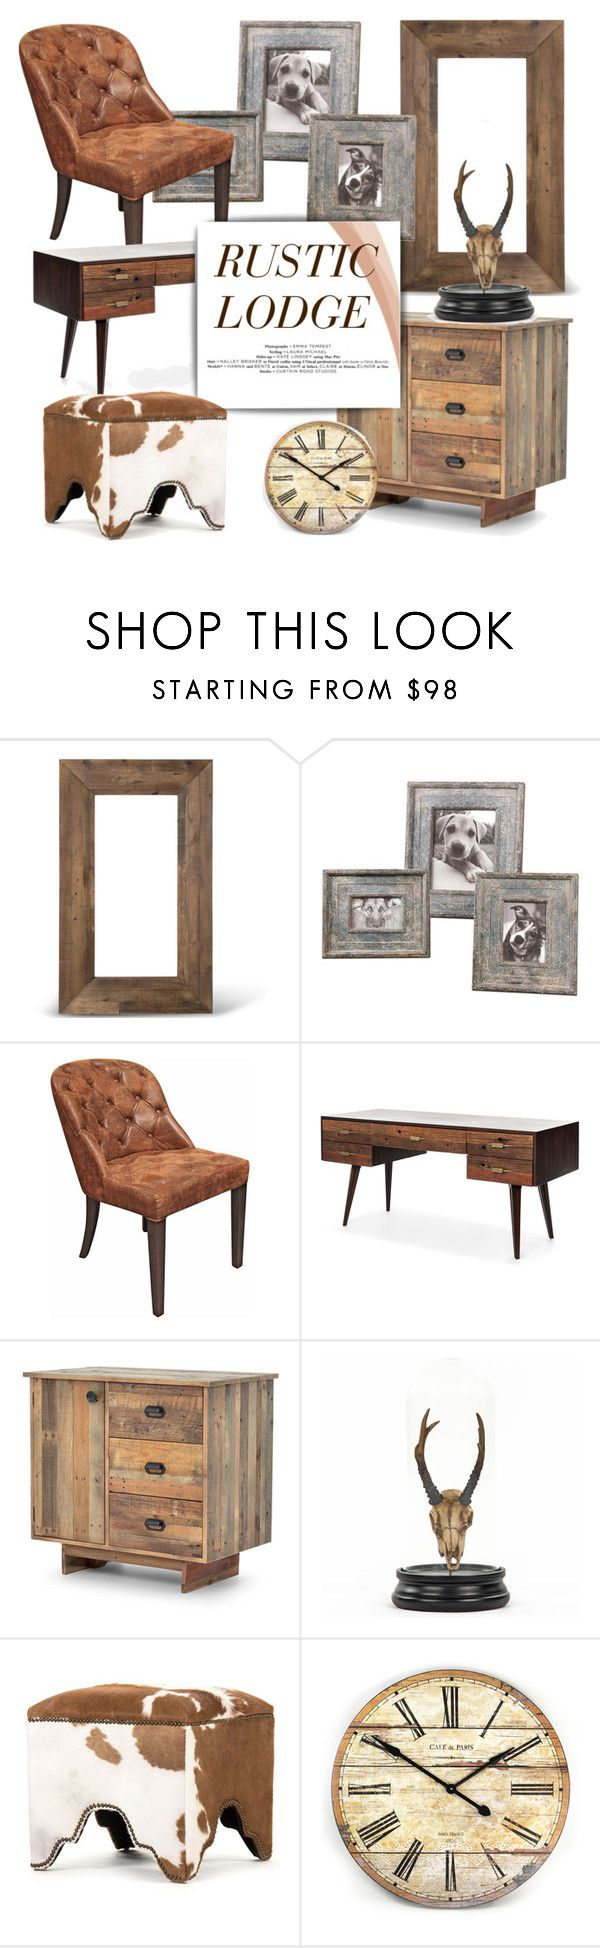 """""""Rustic Lodge Decor"""" by kathykuohome ❤ liked on Polyvore featuring interior, interiors, interior design, home, home decor, interior decorating, Tiffany & Co., rustic, Home and homedecor"""